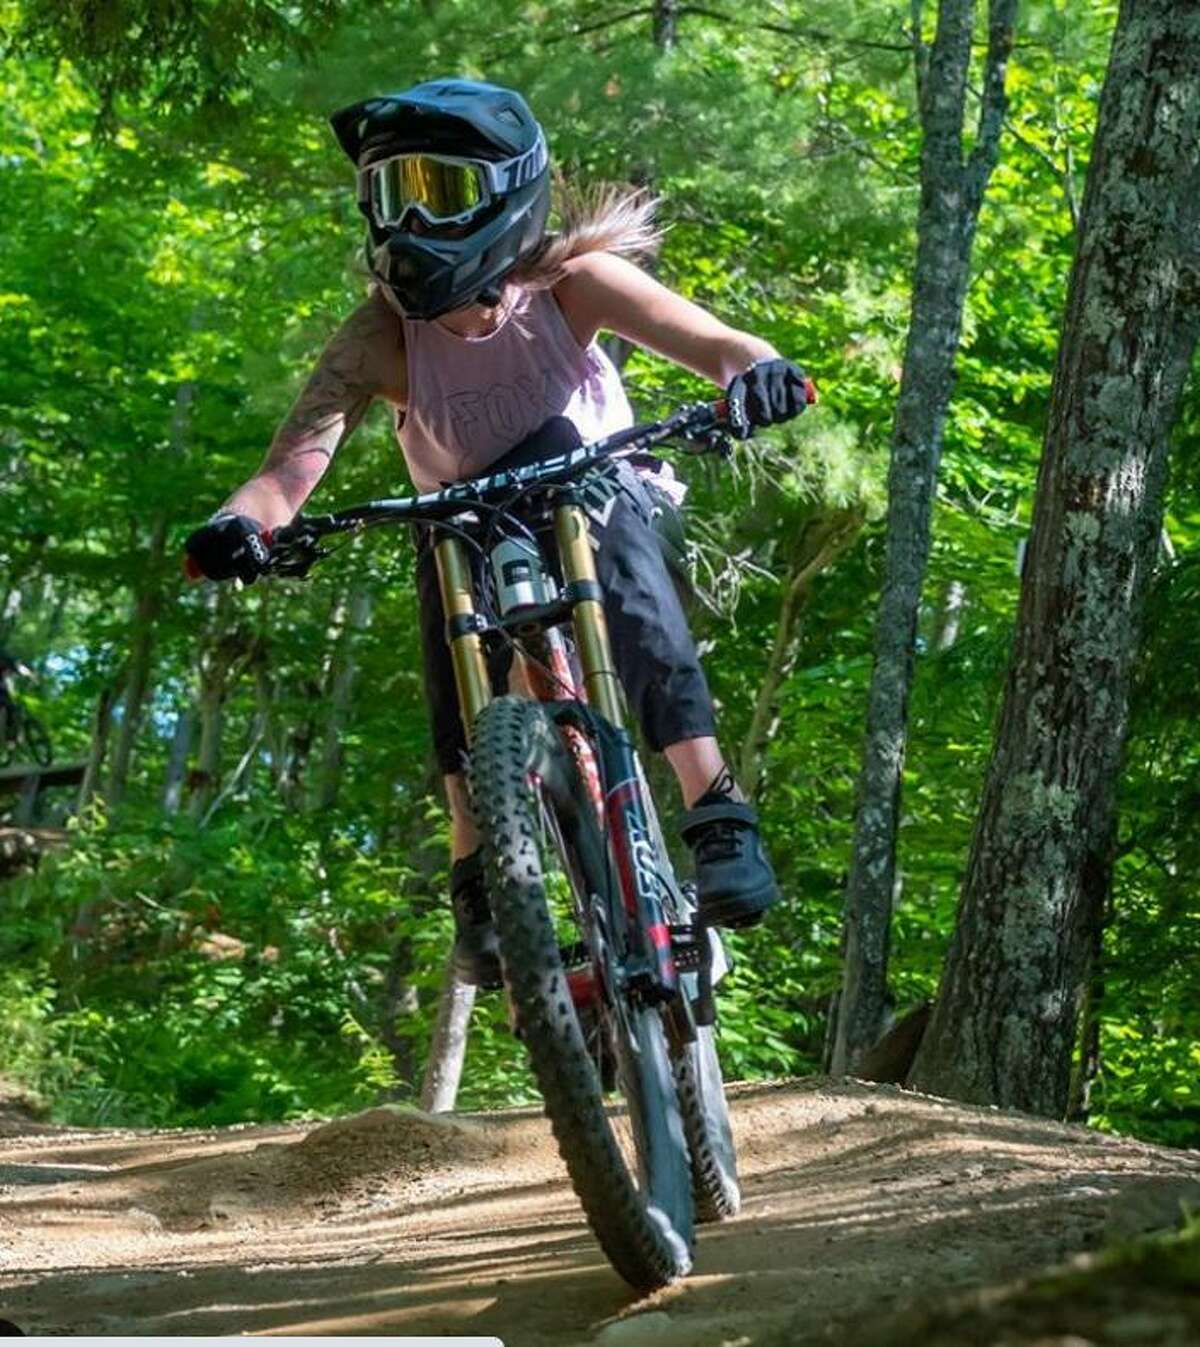 Lindsey Runkel, a registered nurse on the liver and kidney transplant unit at Yale New Haven Hospital, still rides a mountain bike after becoming paralyzed in a biking accident in 2014.